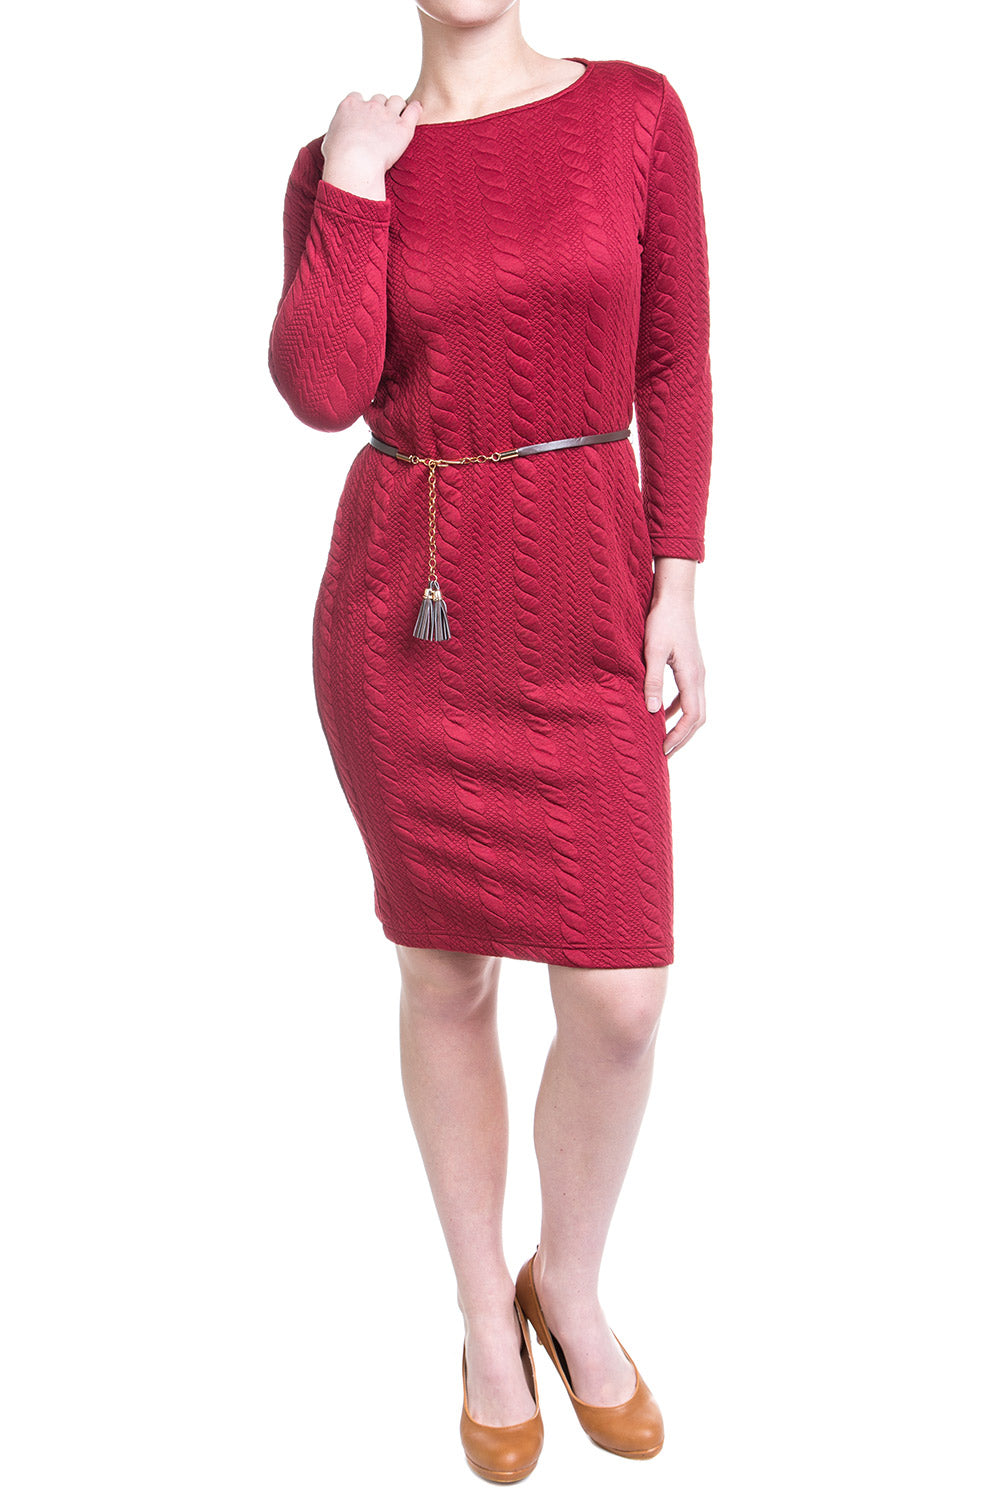 Type 3 Cherry Wine Dress